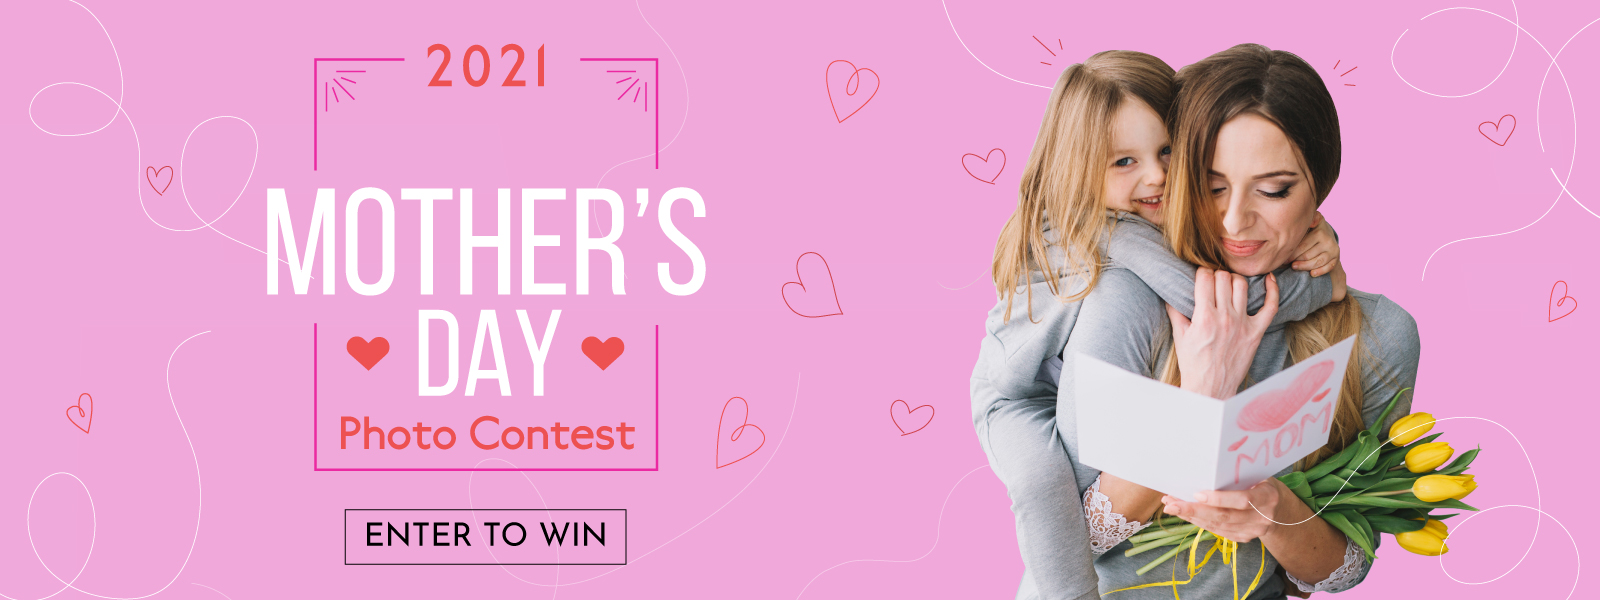 Mothers day Photo contest